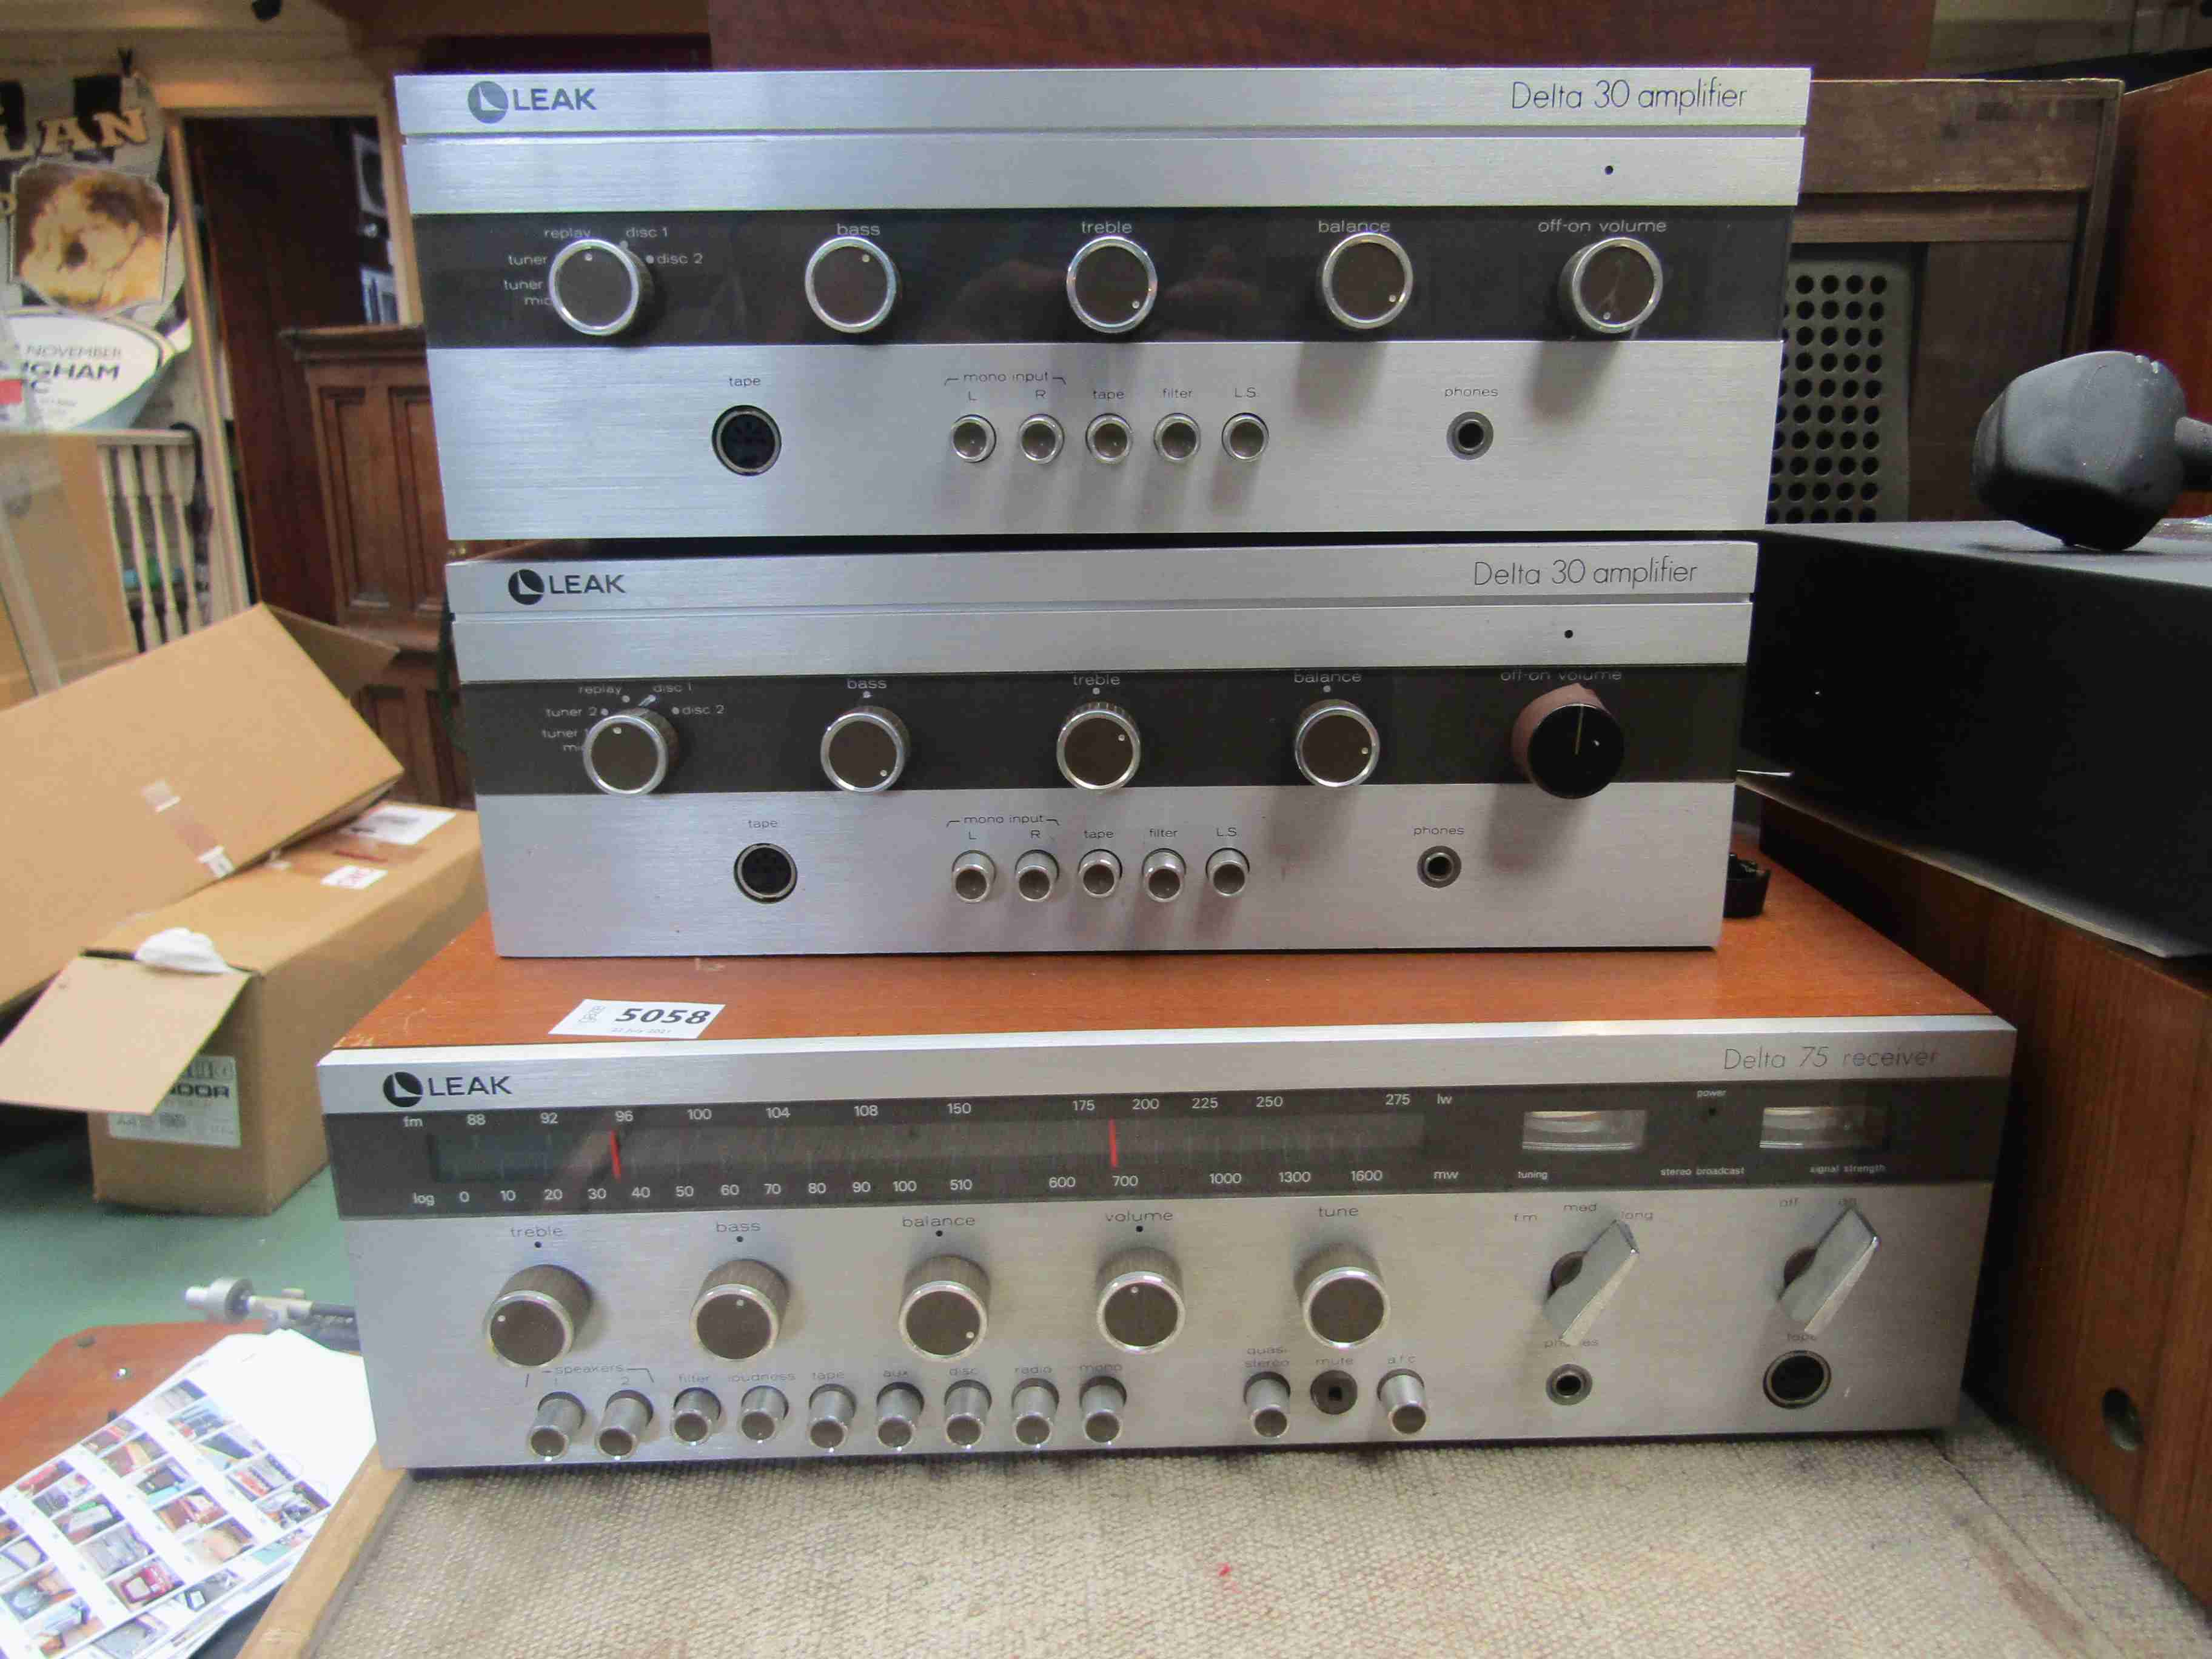 Three Leak hifi items to include a Delta 75 receiver and two Delta 30 amplifiers